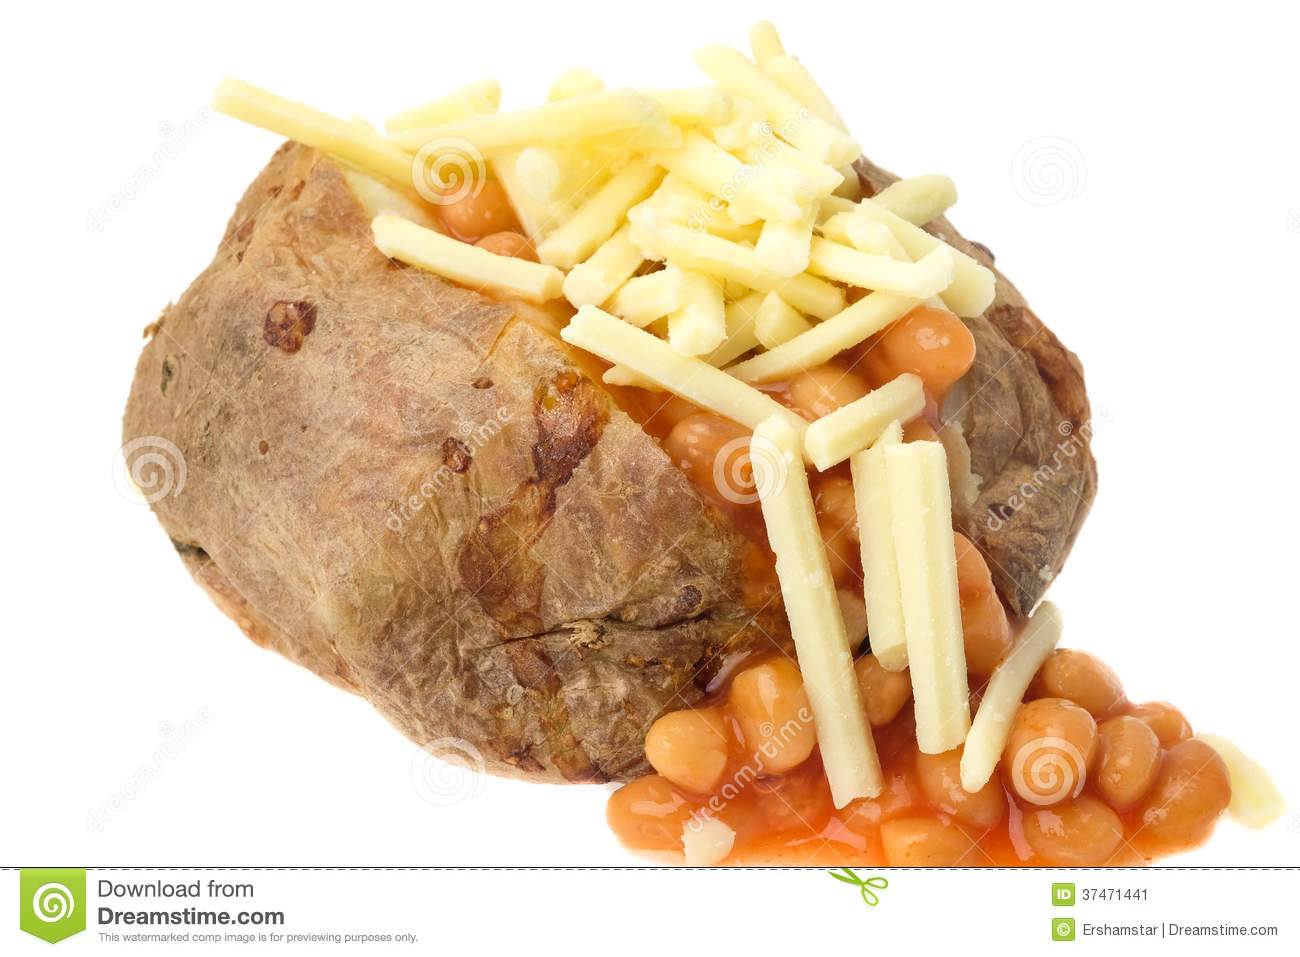 Jacket potato beans cake ideas and designs for Jacket potato fillings mushroom